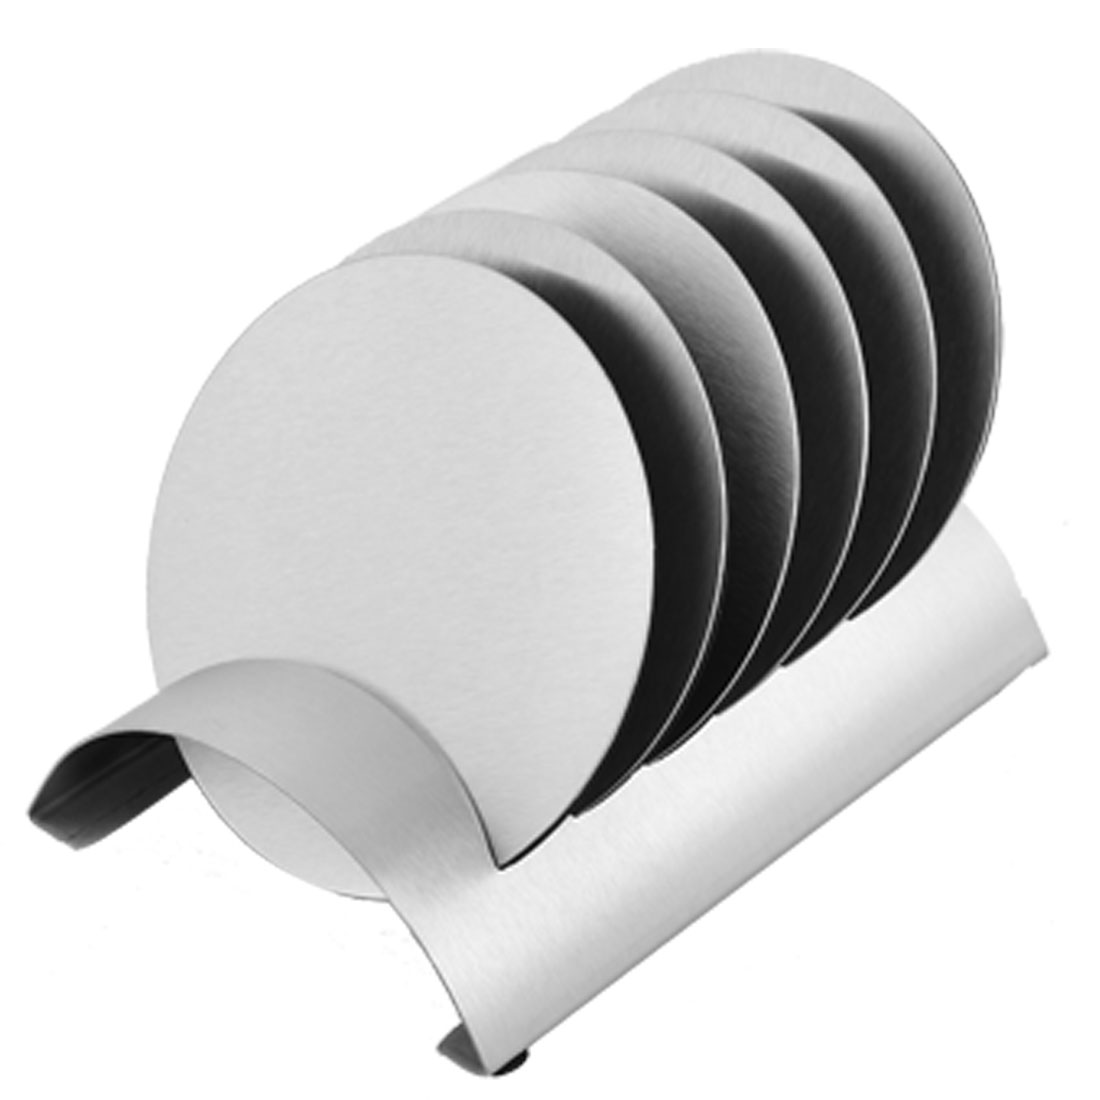 Stainless Steel Round Shaped Heat Resistant Cup Mat Coaster Holder Set 7 in 1